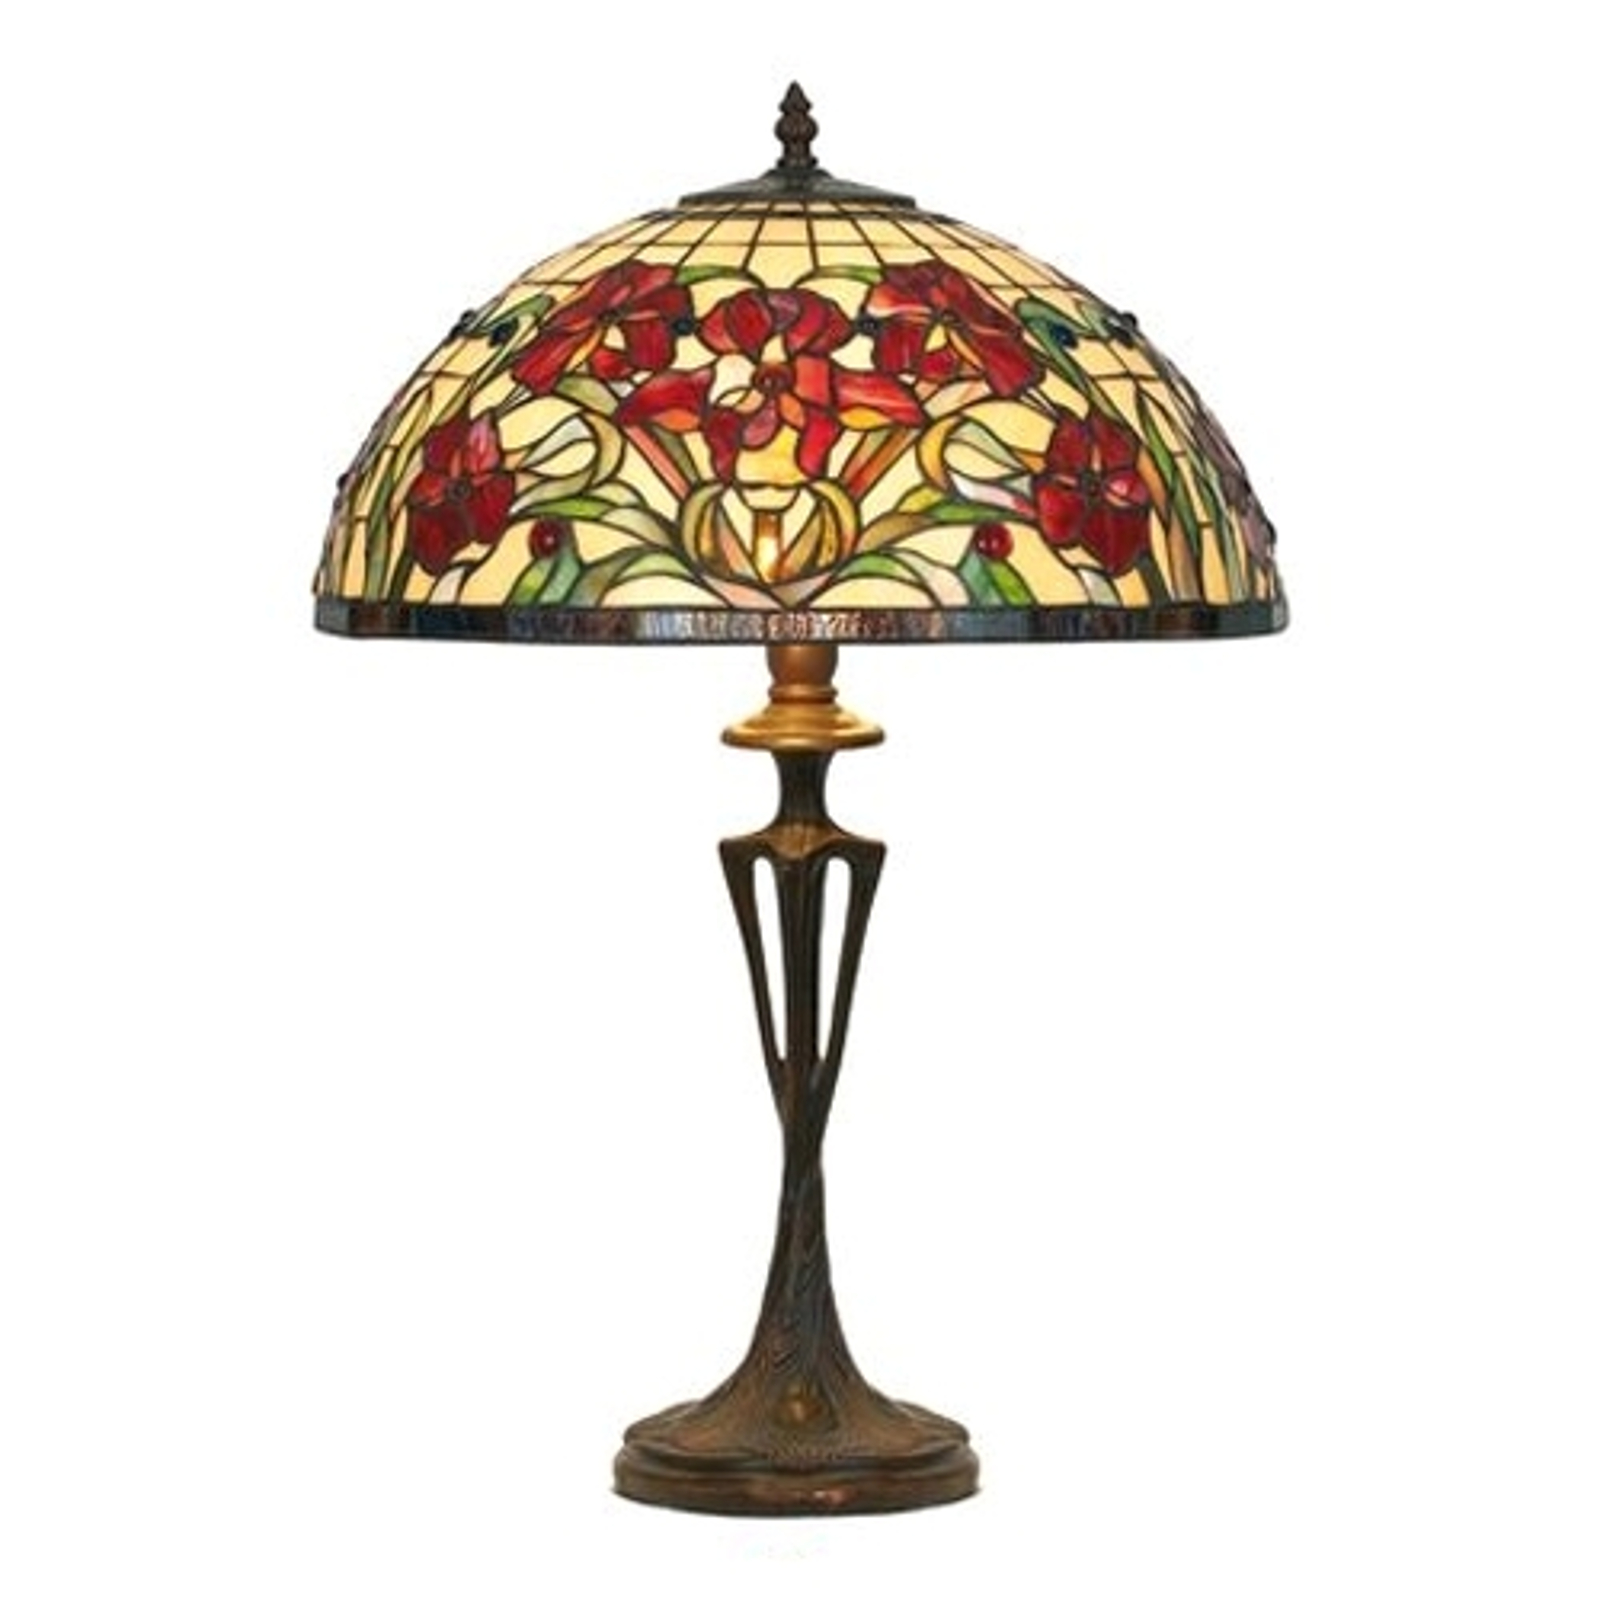 Table lamp Eline in Tiffany style_1032171_1